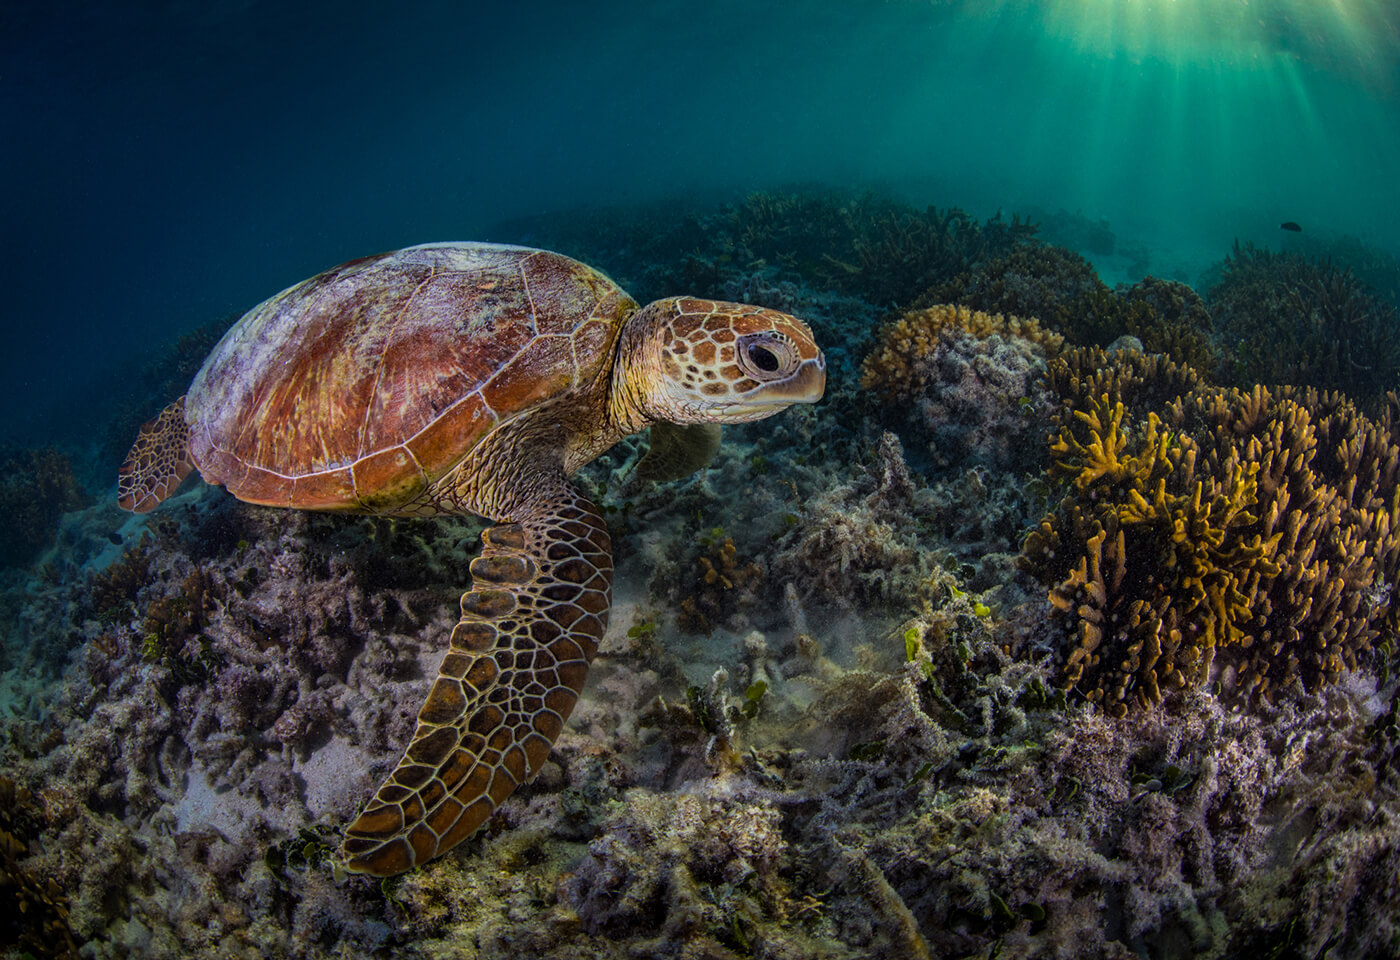 Underwater turtles by Greg Sullavan